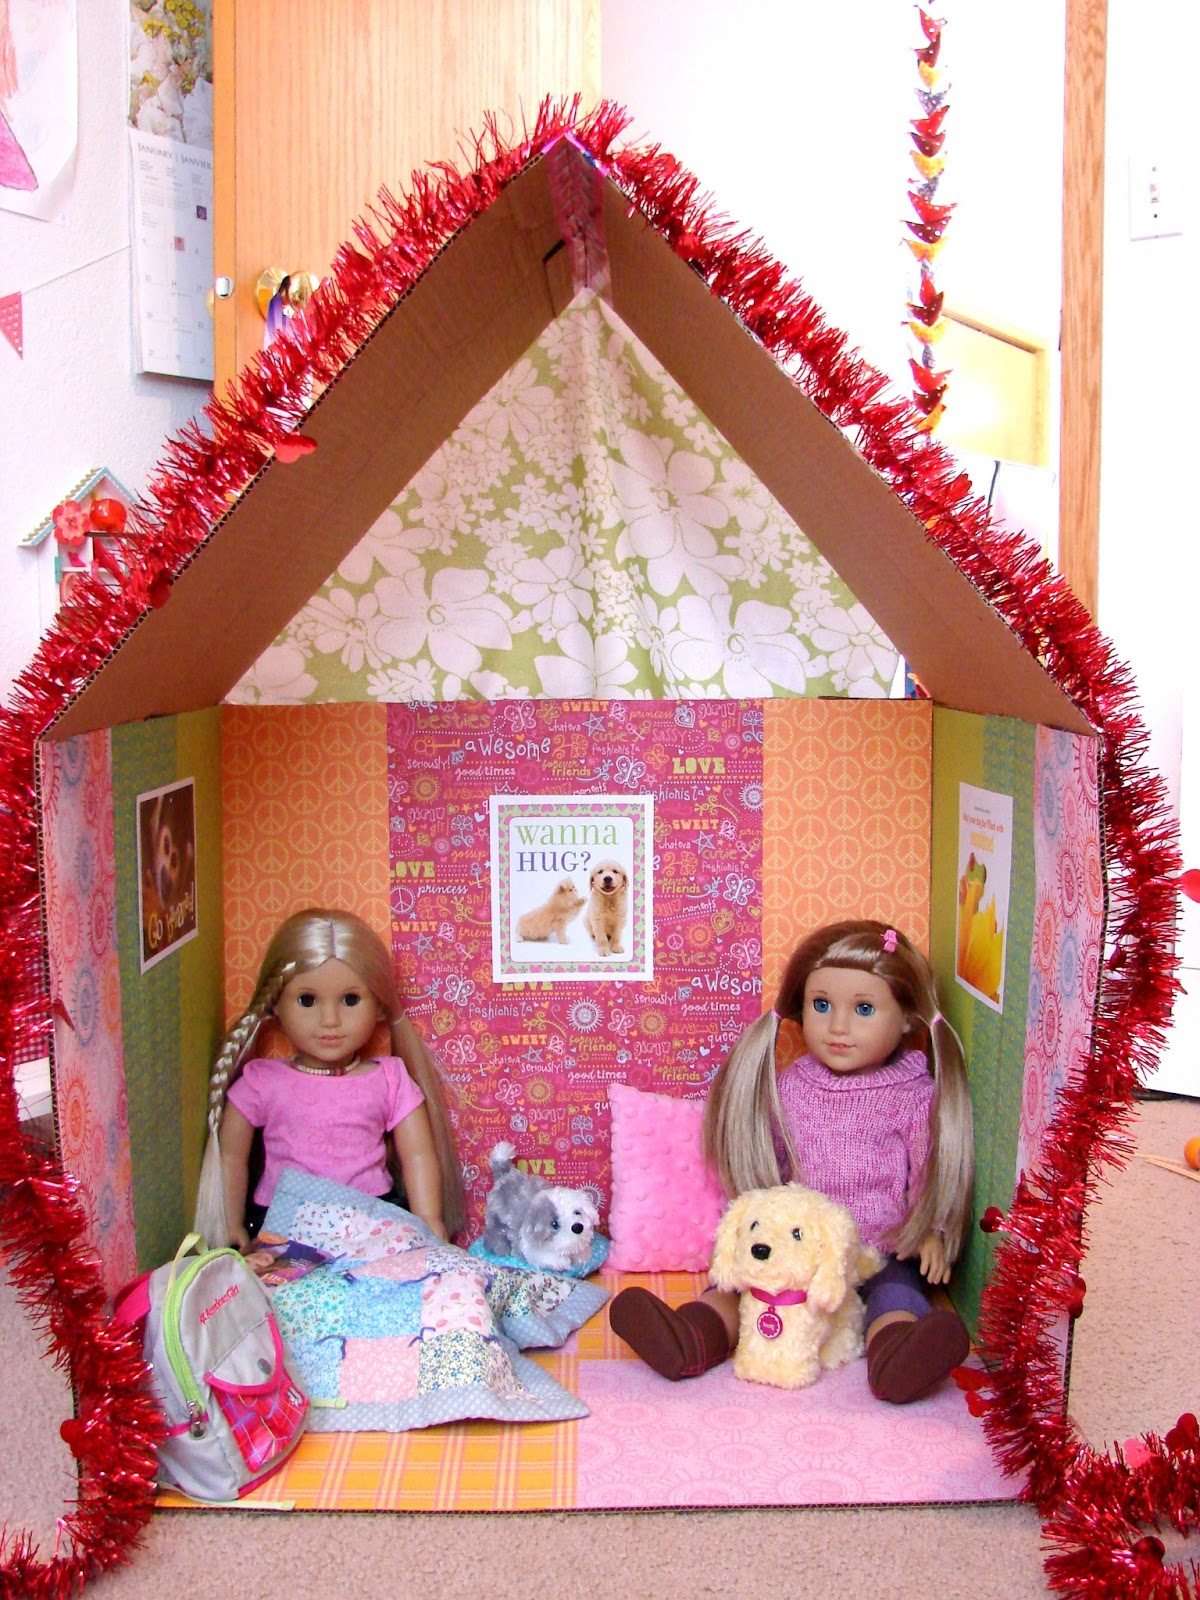 American girl doll play doll craft make a clubhouse for your dolls lately i find myself pinning doll craft ideas for when i have some time on my hands with zoey for us to create a little something solutioingenieria Images